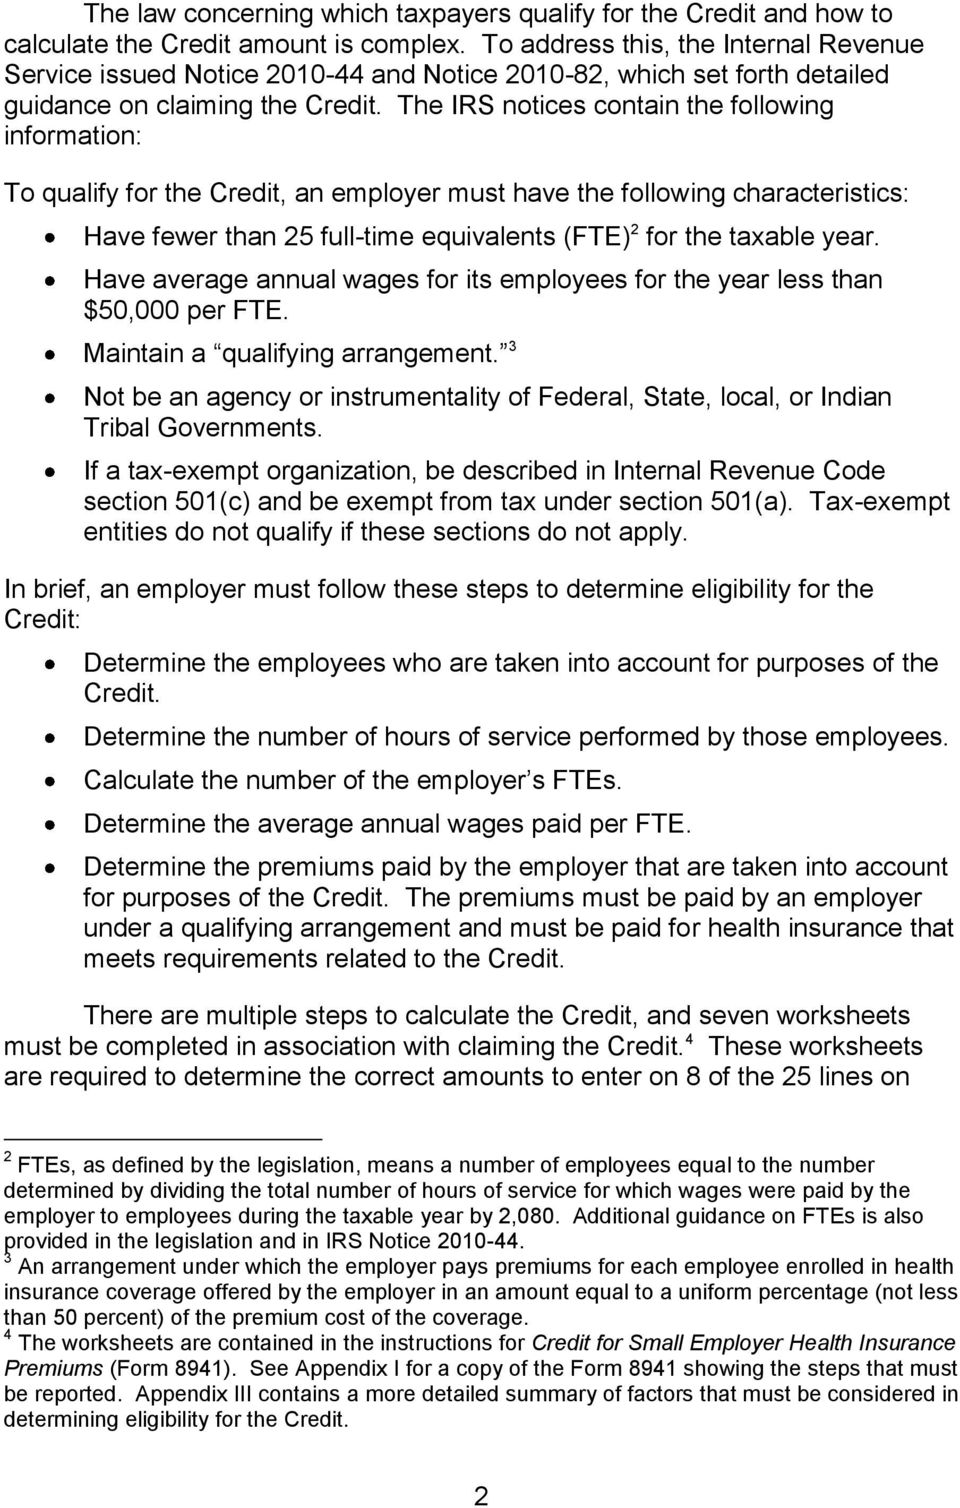 The IRS notices contain the following information: To qualify for the Credit, an employer must have the following characteristics: Have fewer than 25 full-time equivalents (FTE) 2 for the taxable